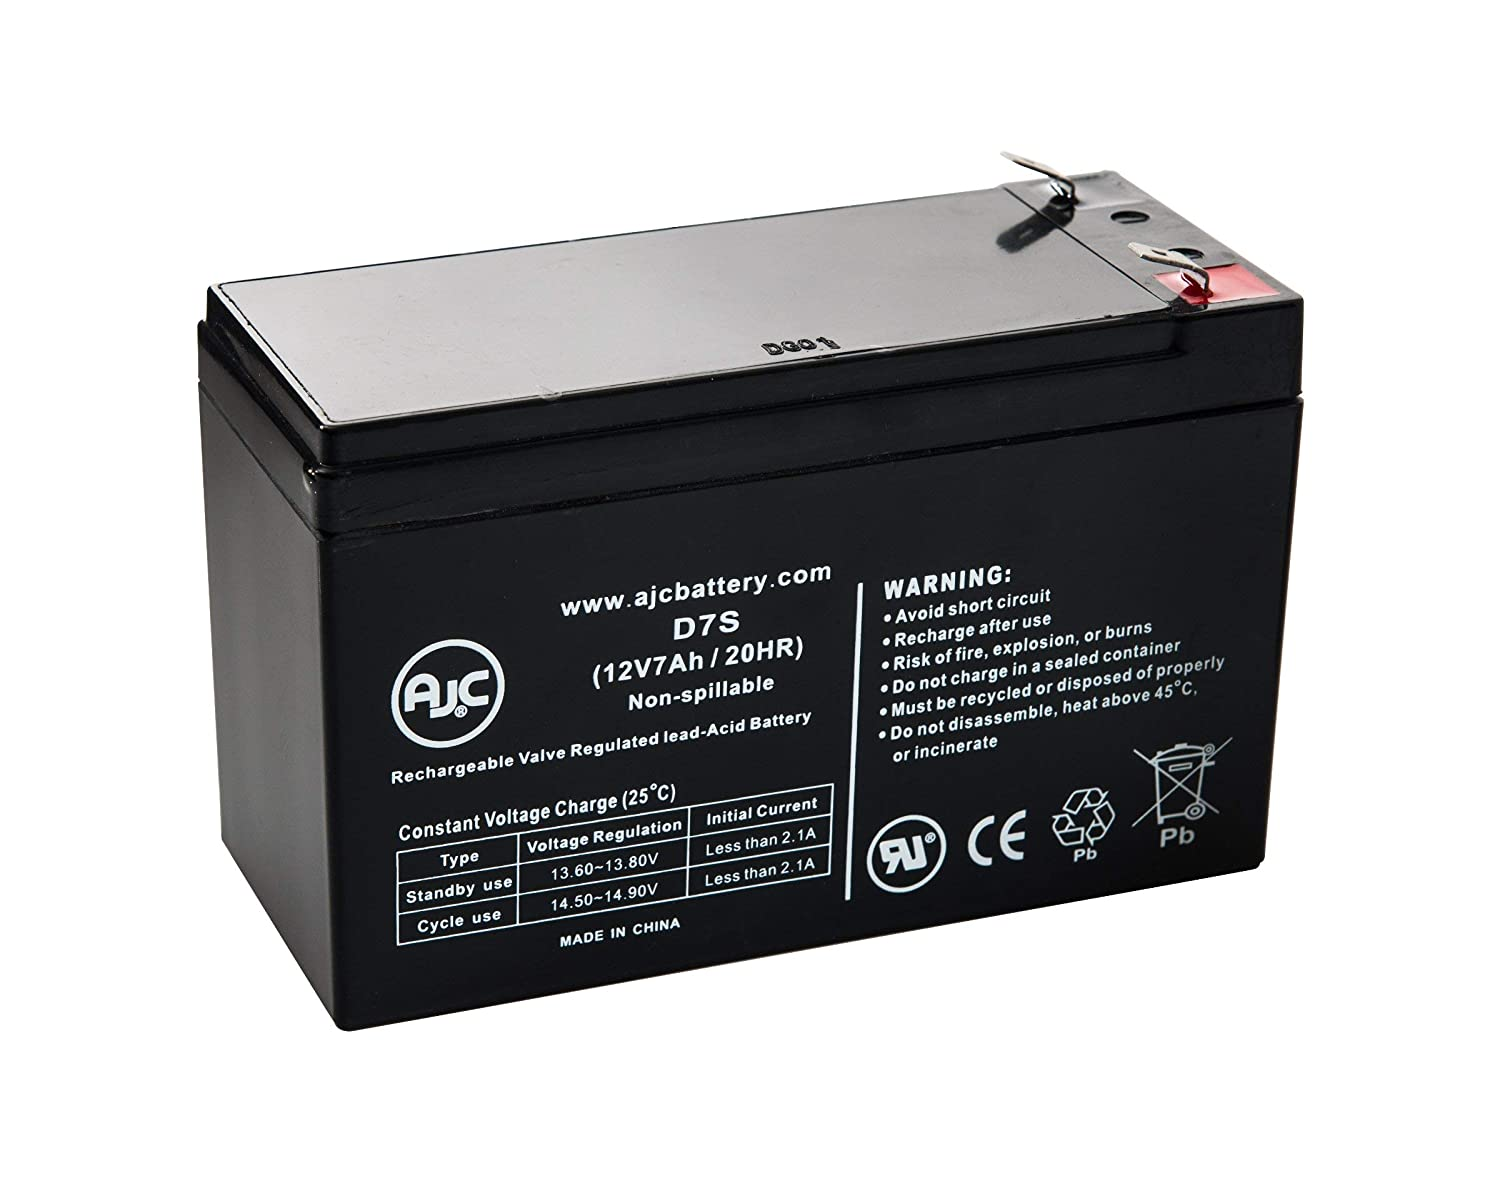 AJC Replacement Battery for ADT 477967 12V, 7Ah Alarm Batteries